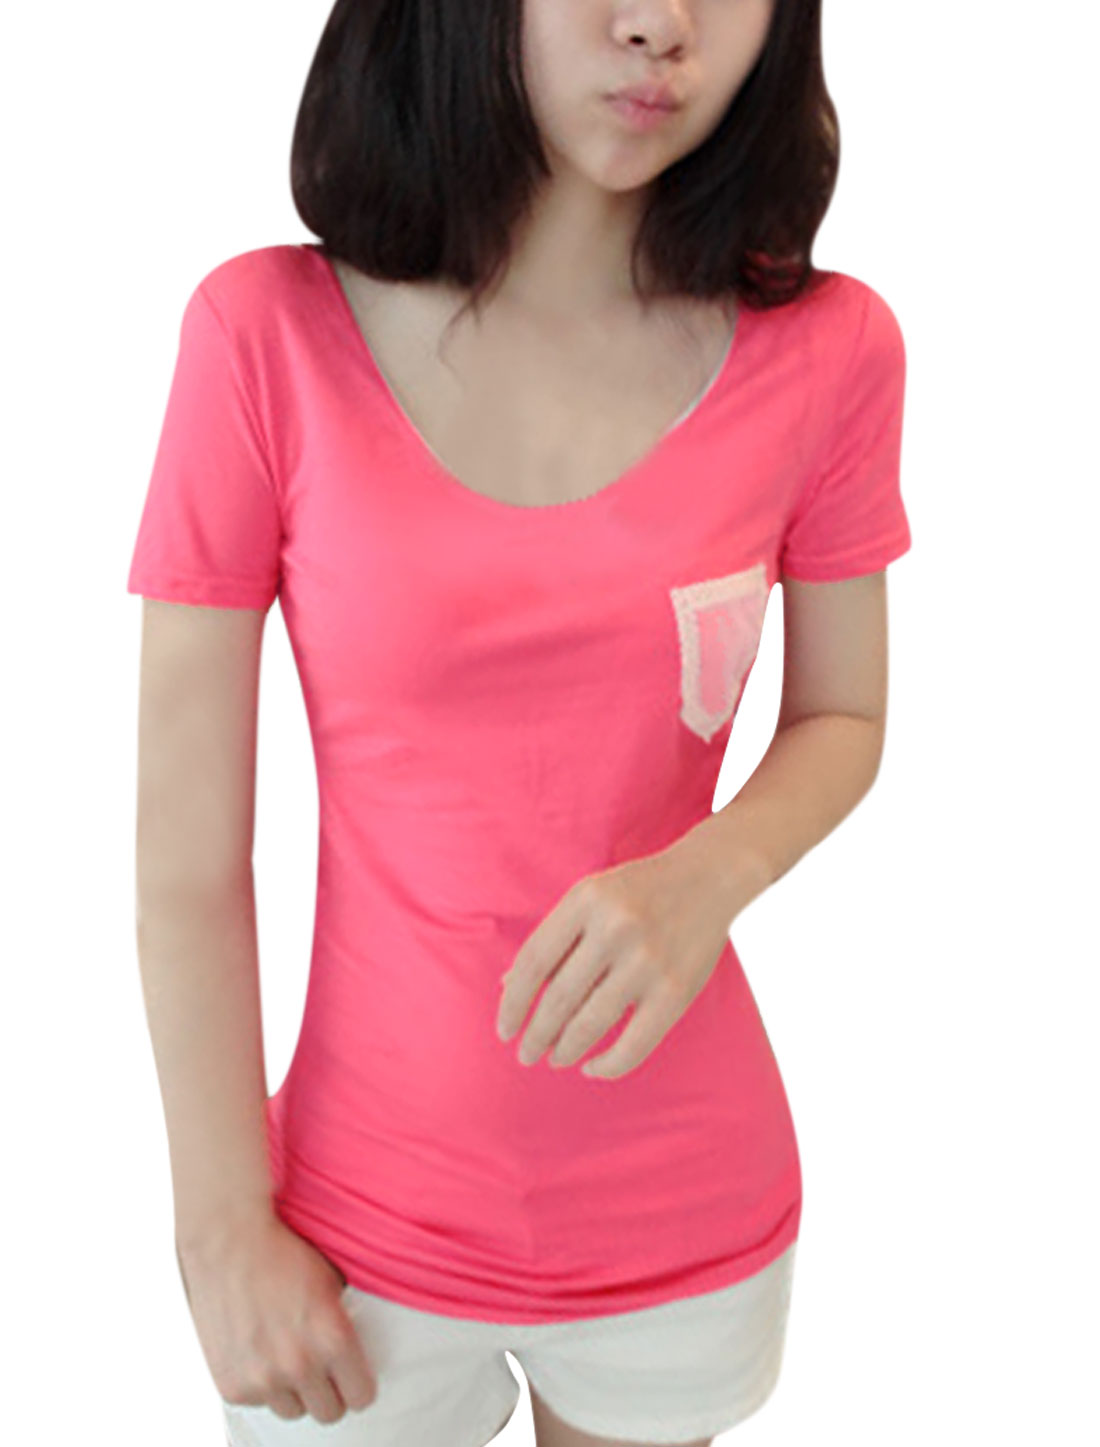 Lady Deep Pink Short Sleeve Round Neck Chest Pocket Tee Shirt XS